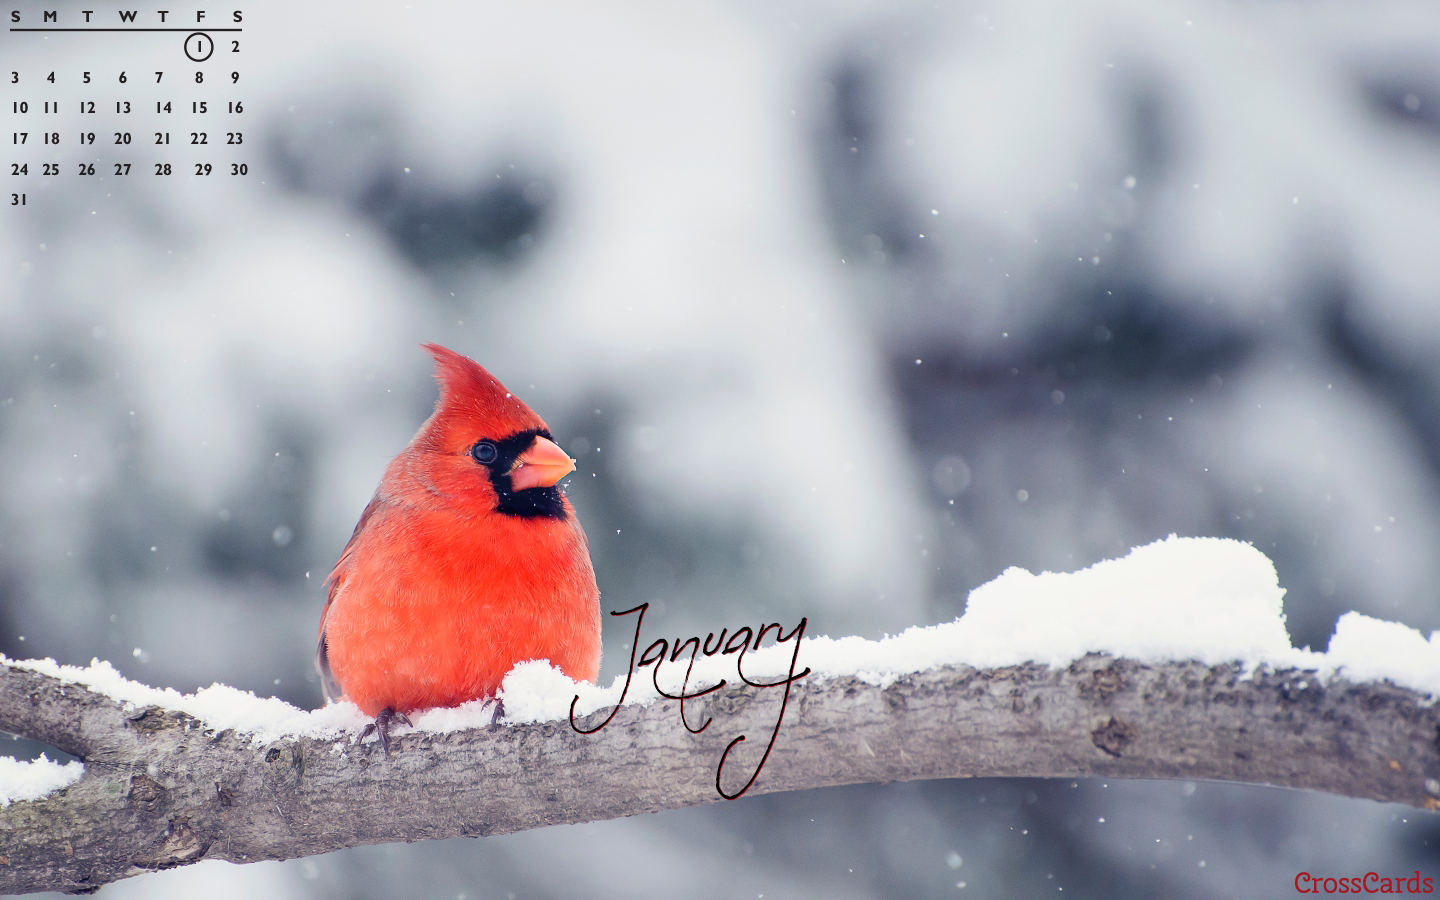 January 2021 - Cardinal in the Snow mobile phone wallpaper